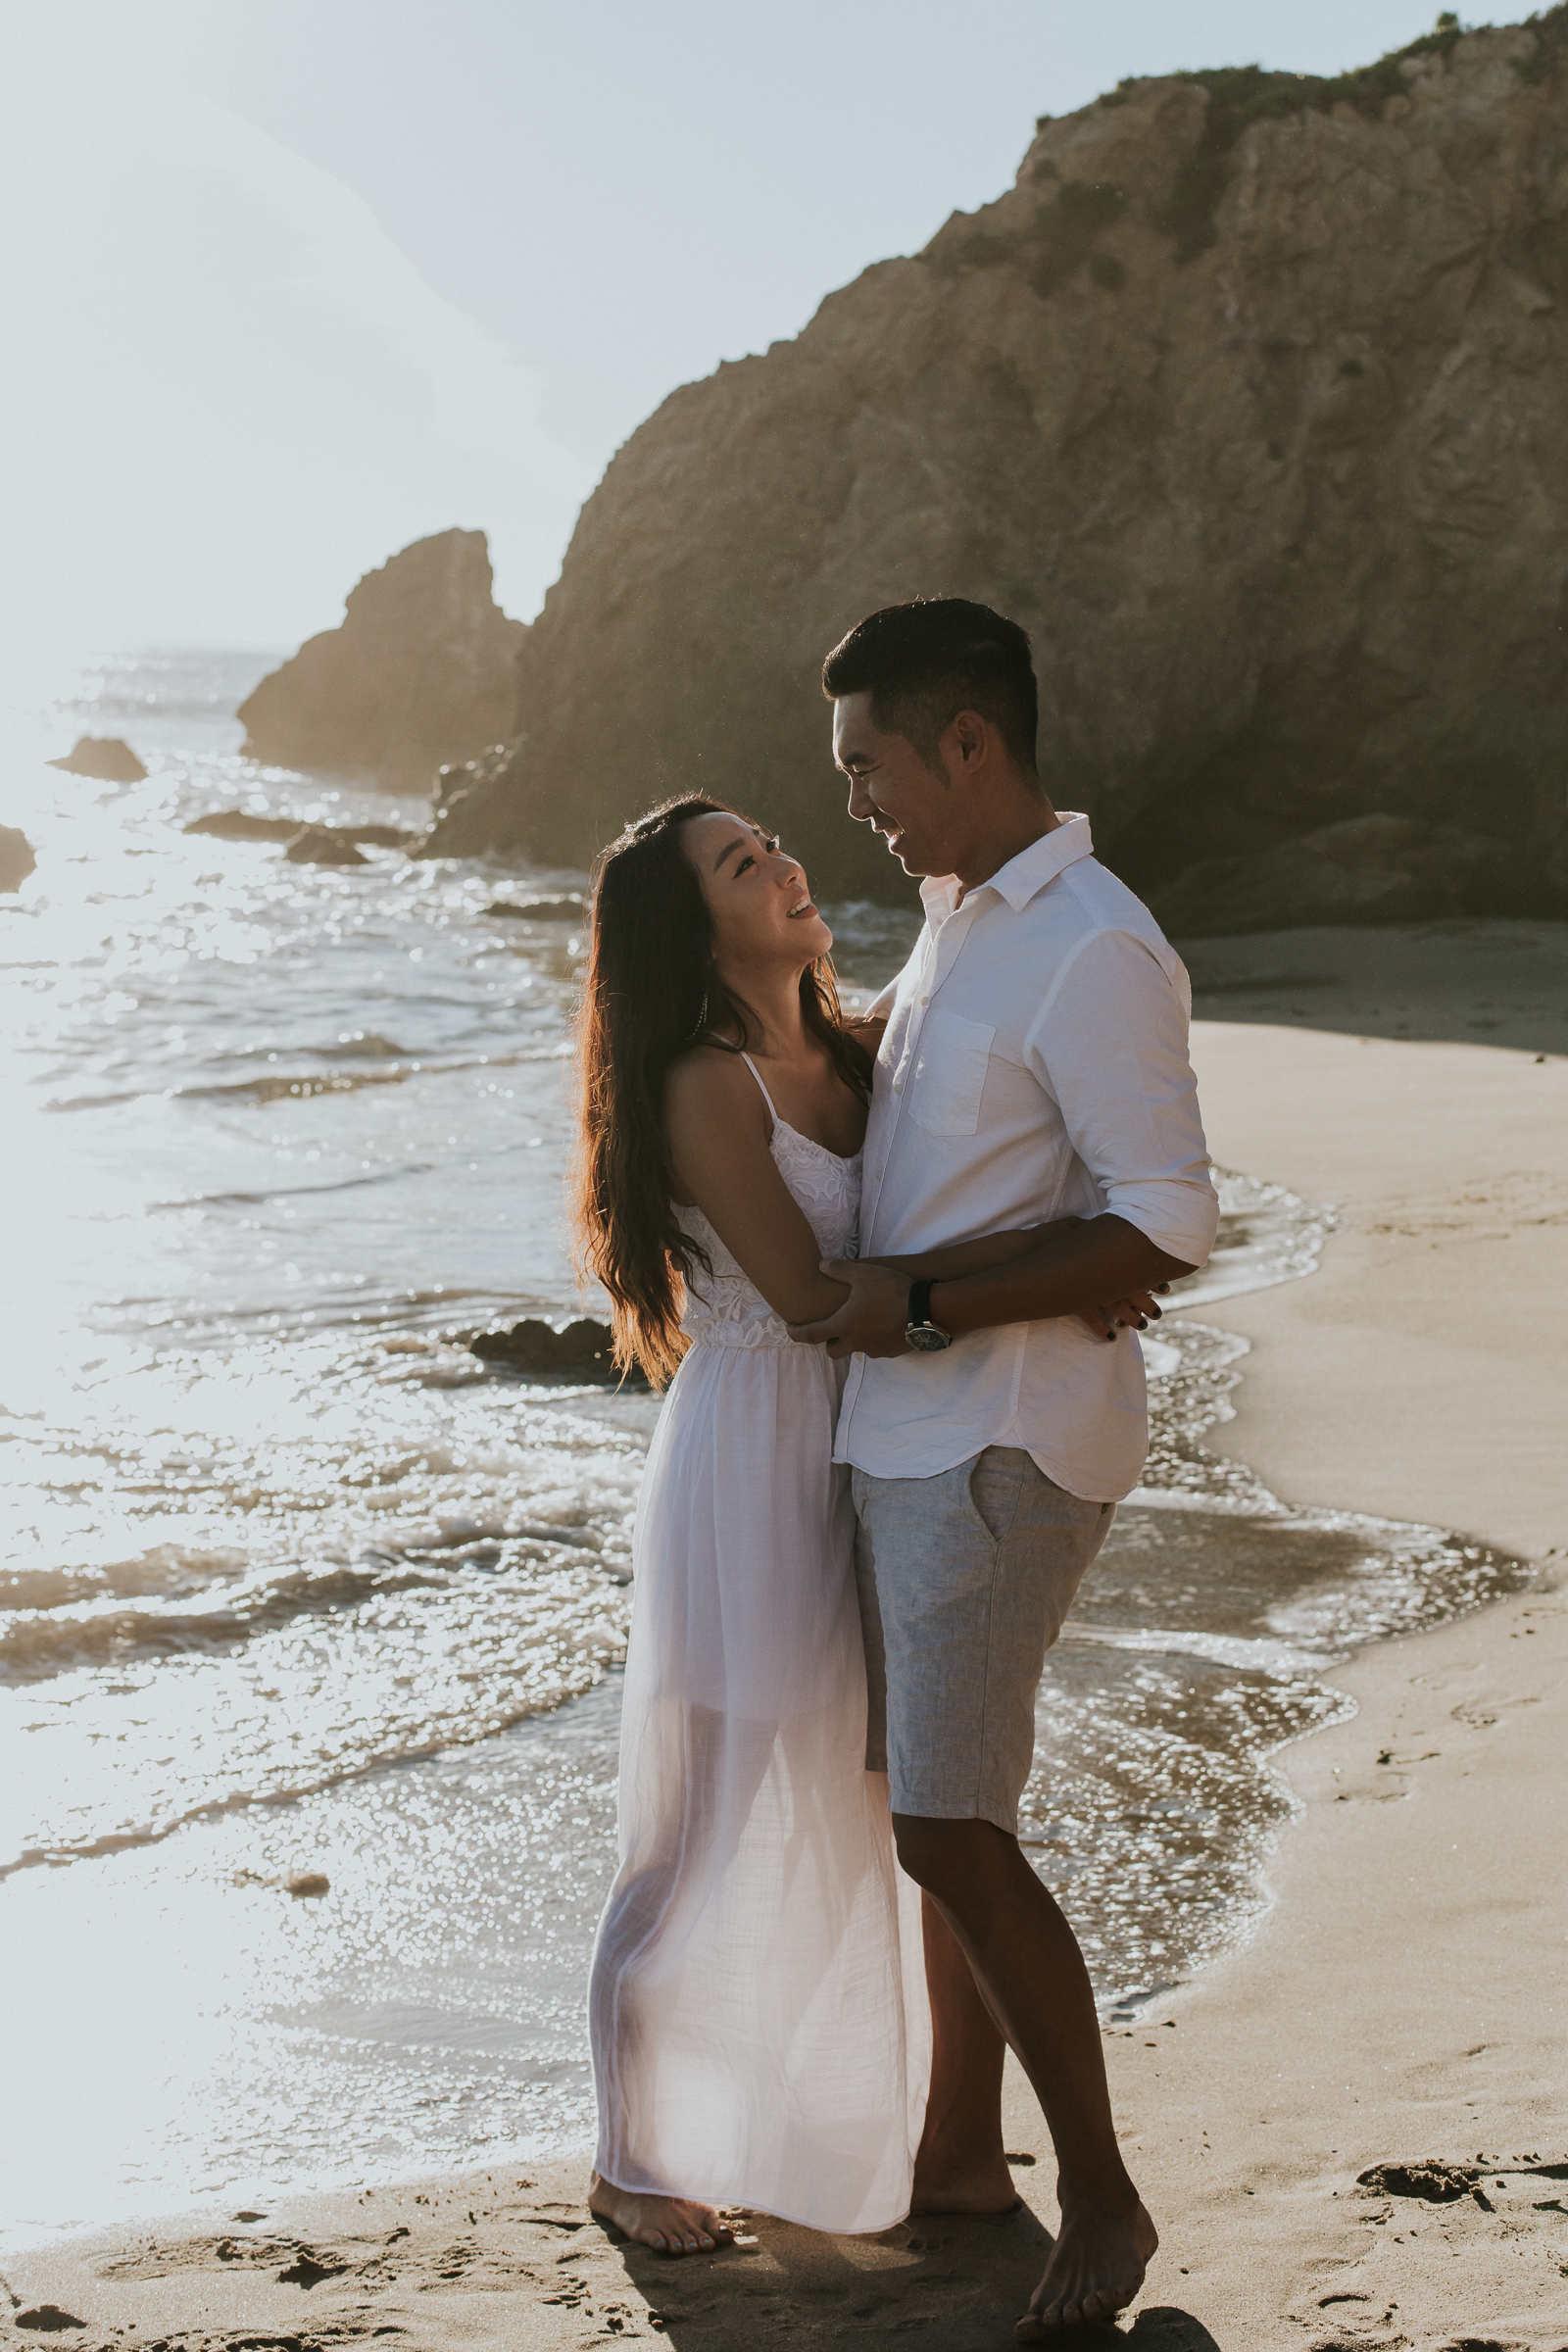 Malibu-El-Matador-State-Beach-Sunset-Engagement-Photos-Los-Angeles-Documentary-Wedding-Photographer-4.jpg